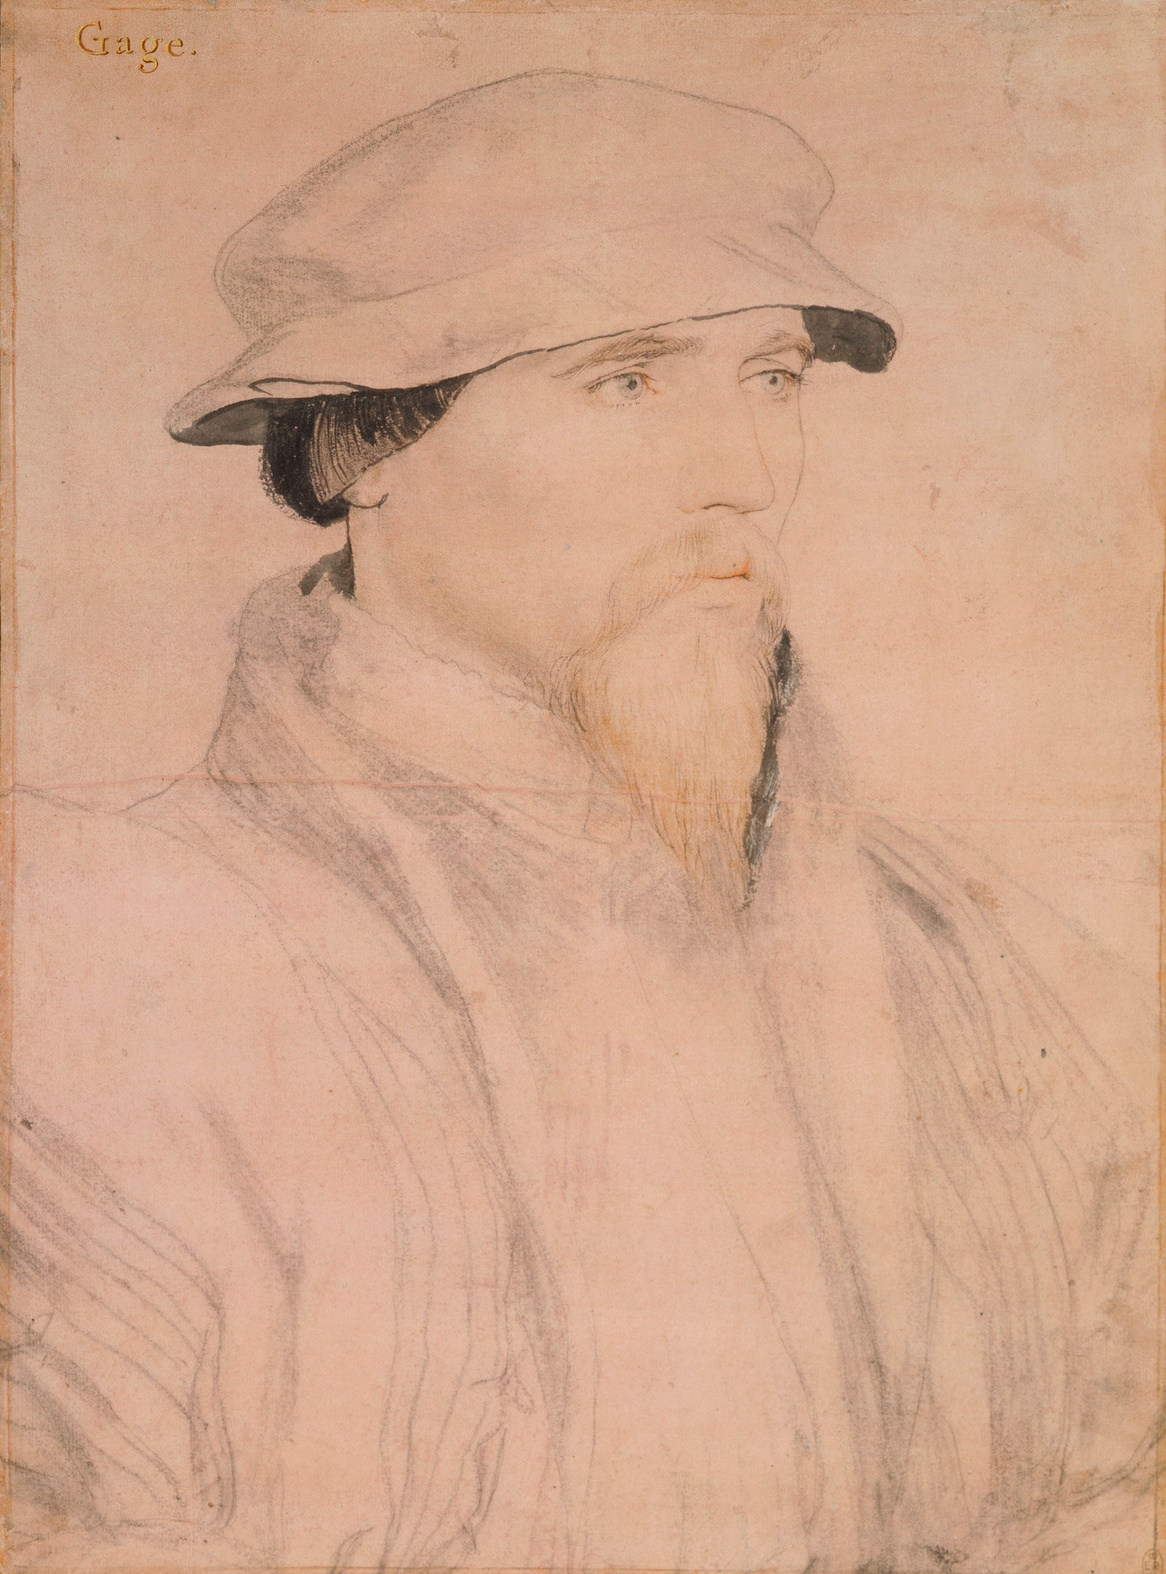 a biography of hans holbein the younger Hans holbein the younger: hans holbein the younger, german painter, draftsman, and designer, renowned for the precise rendering of his drawings and the compelling realism of his portraits, particularly those recording the court of king henry viii of england.